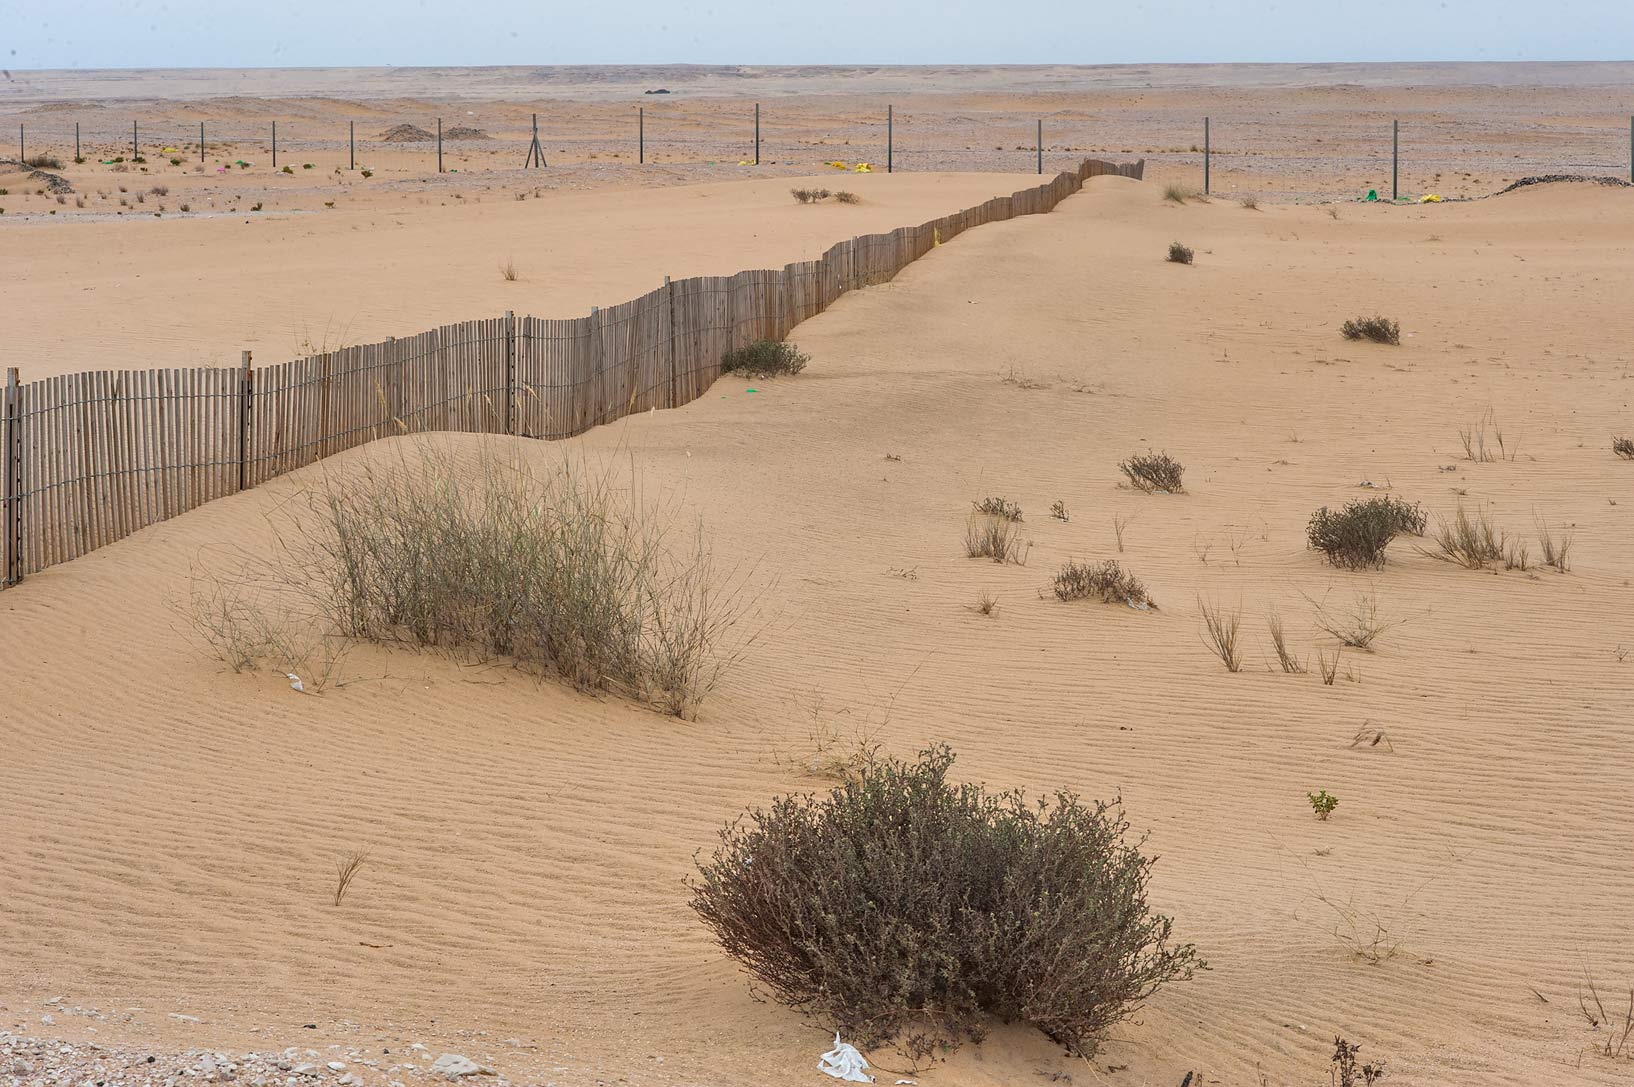 Sand fence on roadside of Salwa Rd. in area of Khashem Al Nekhsh. Qatar